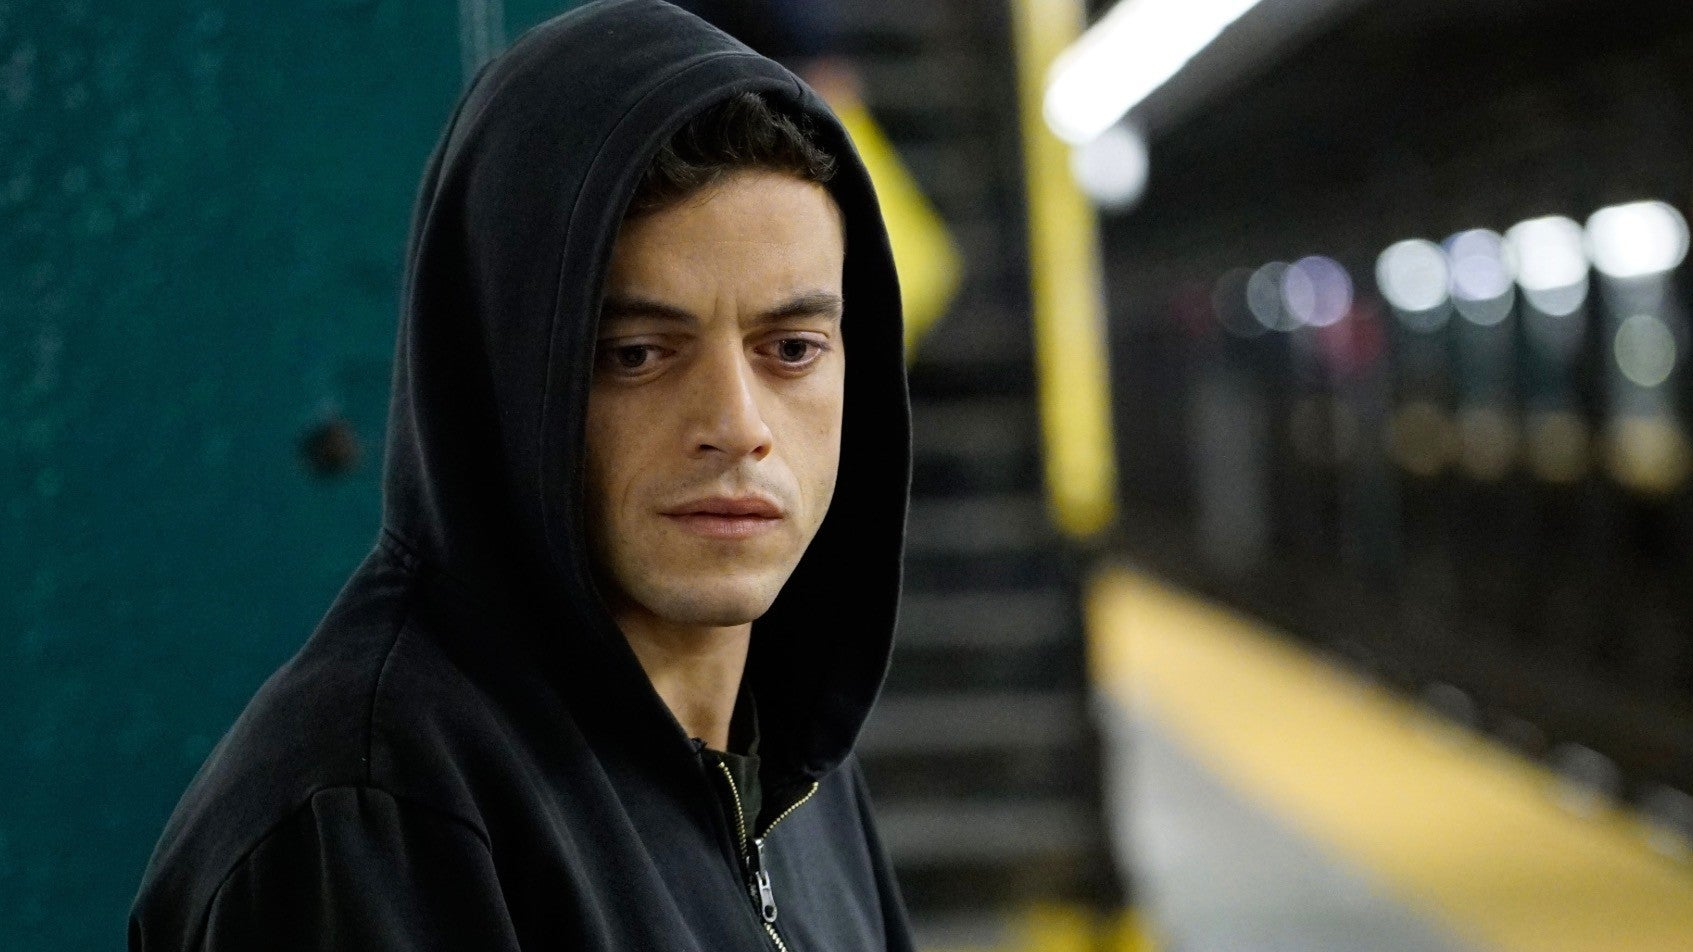 Rami Malek Had An Important Request Before Joining Bond 25